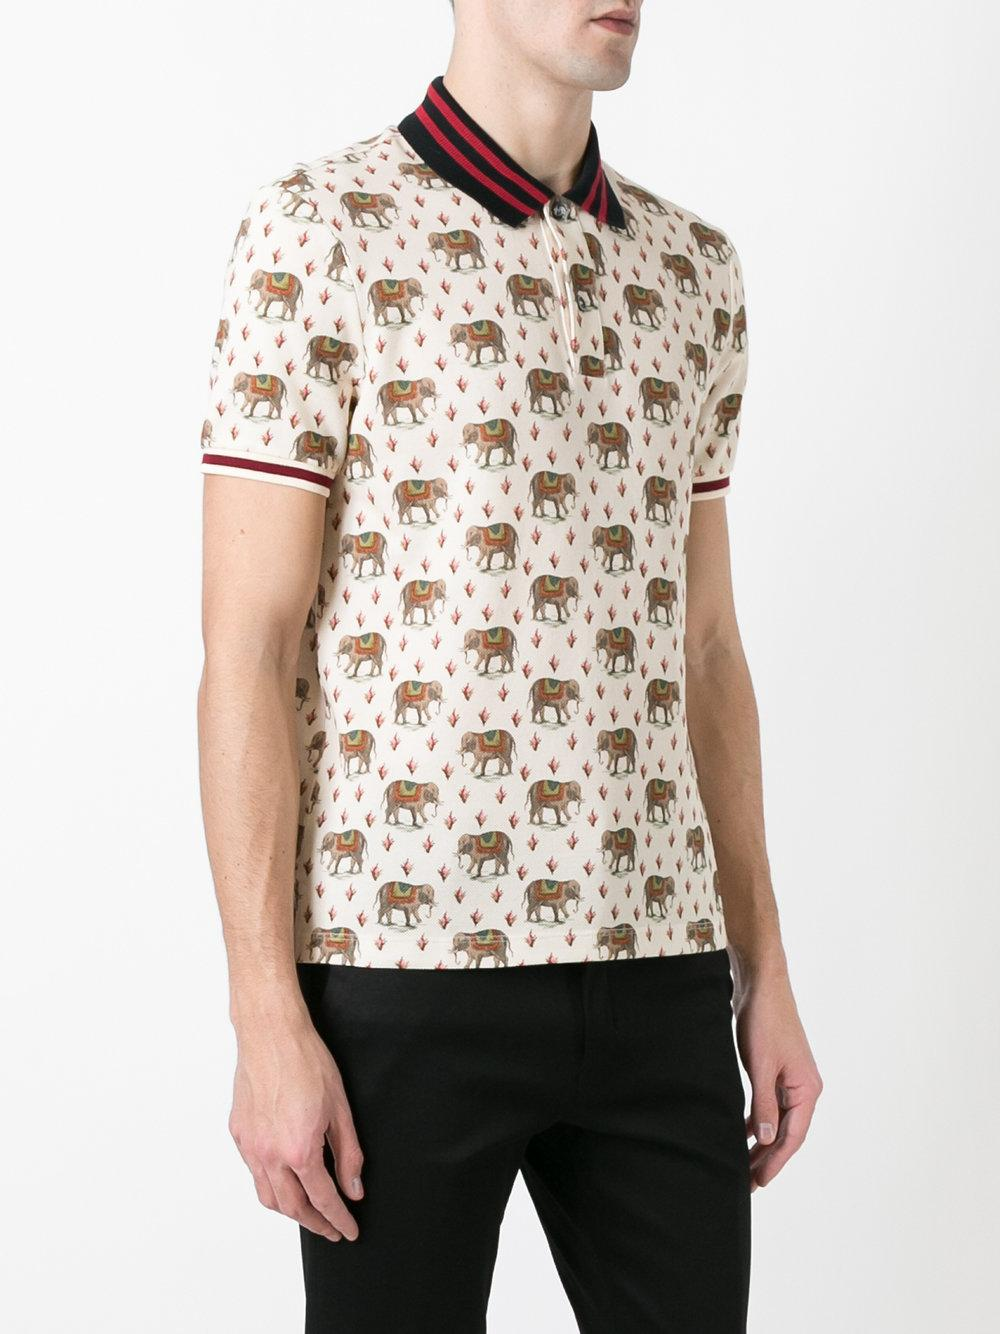 Lyst - Gucci Elephant Print Polo Shirt In Natural For Men-3753